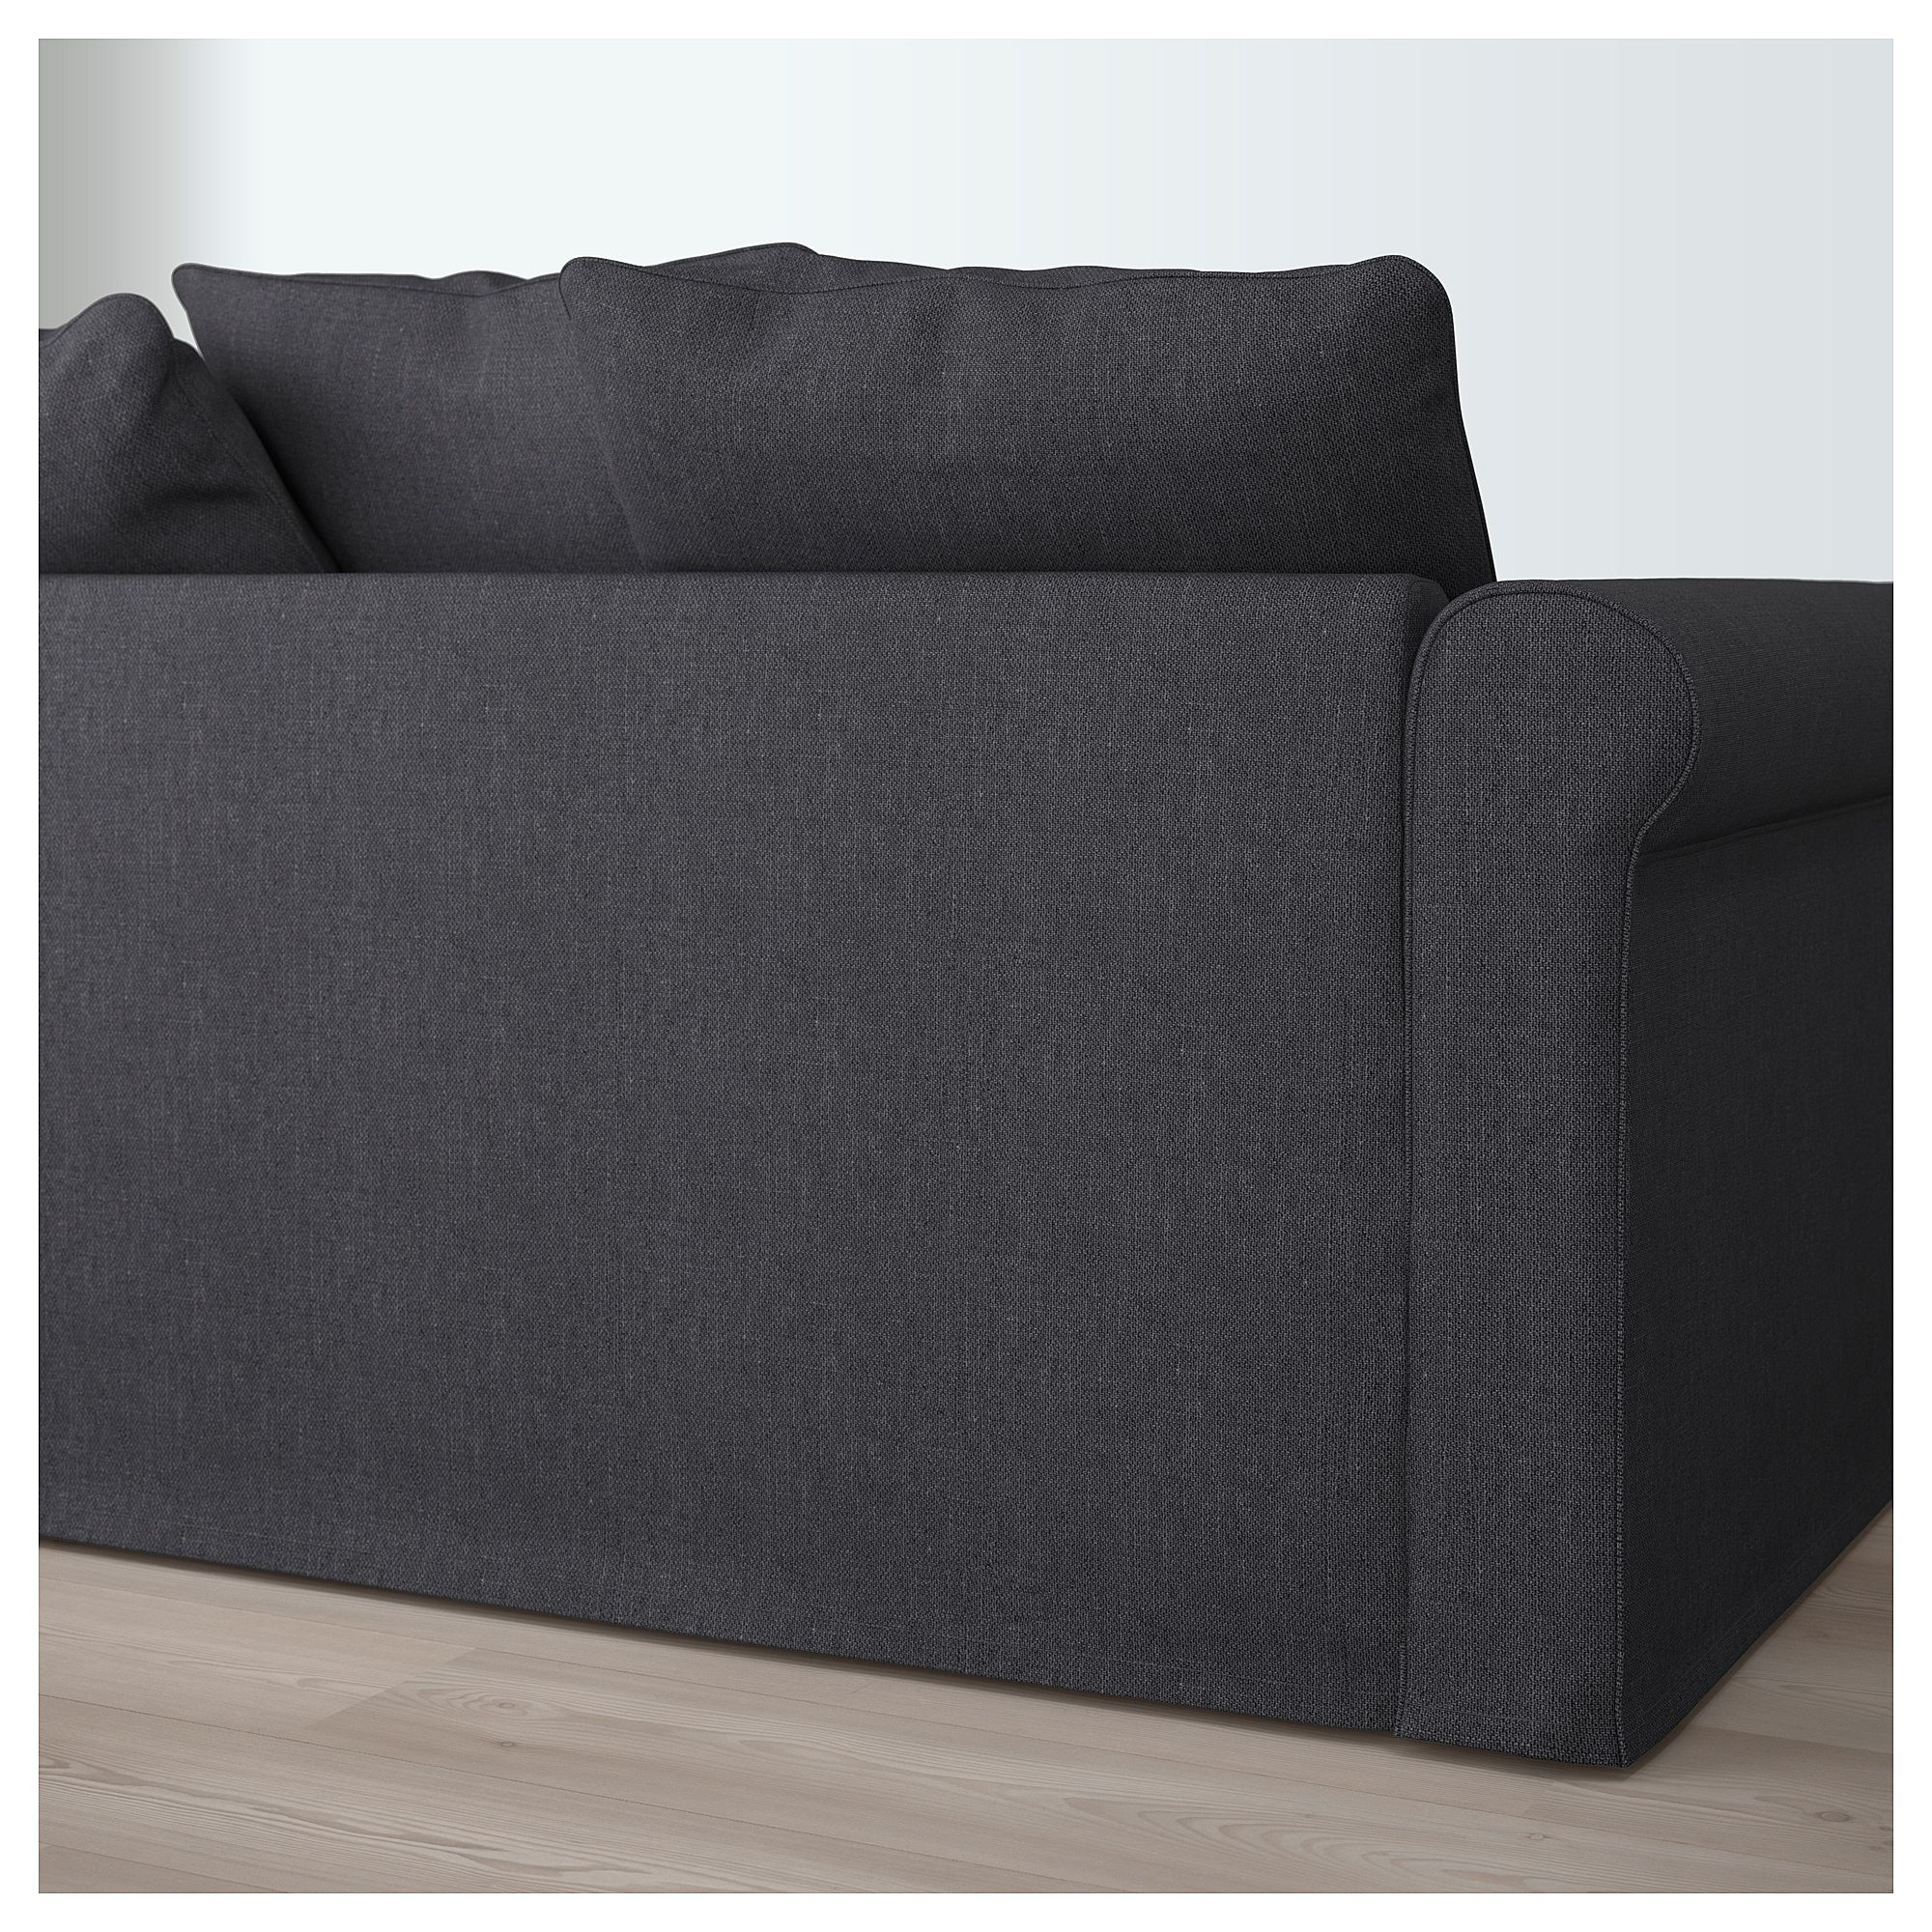 Dreisitzer Sofa Ikea GrÖnlid Sectional 4 Seat With Chaise Sporda Dark Gray